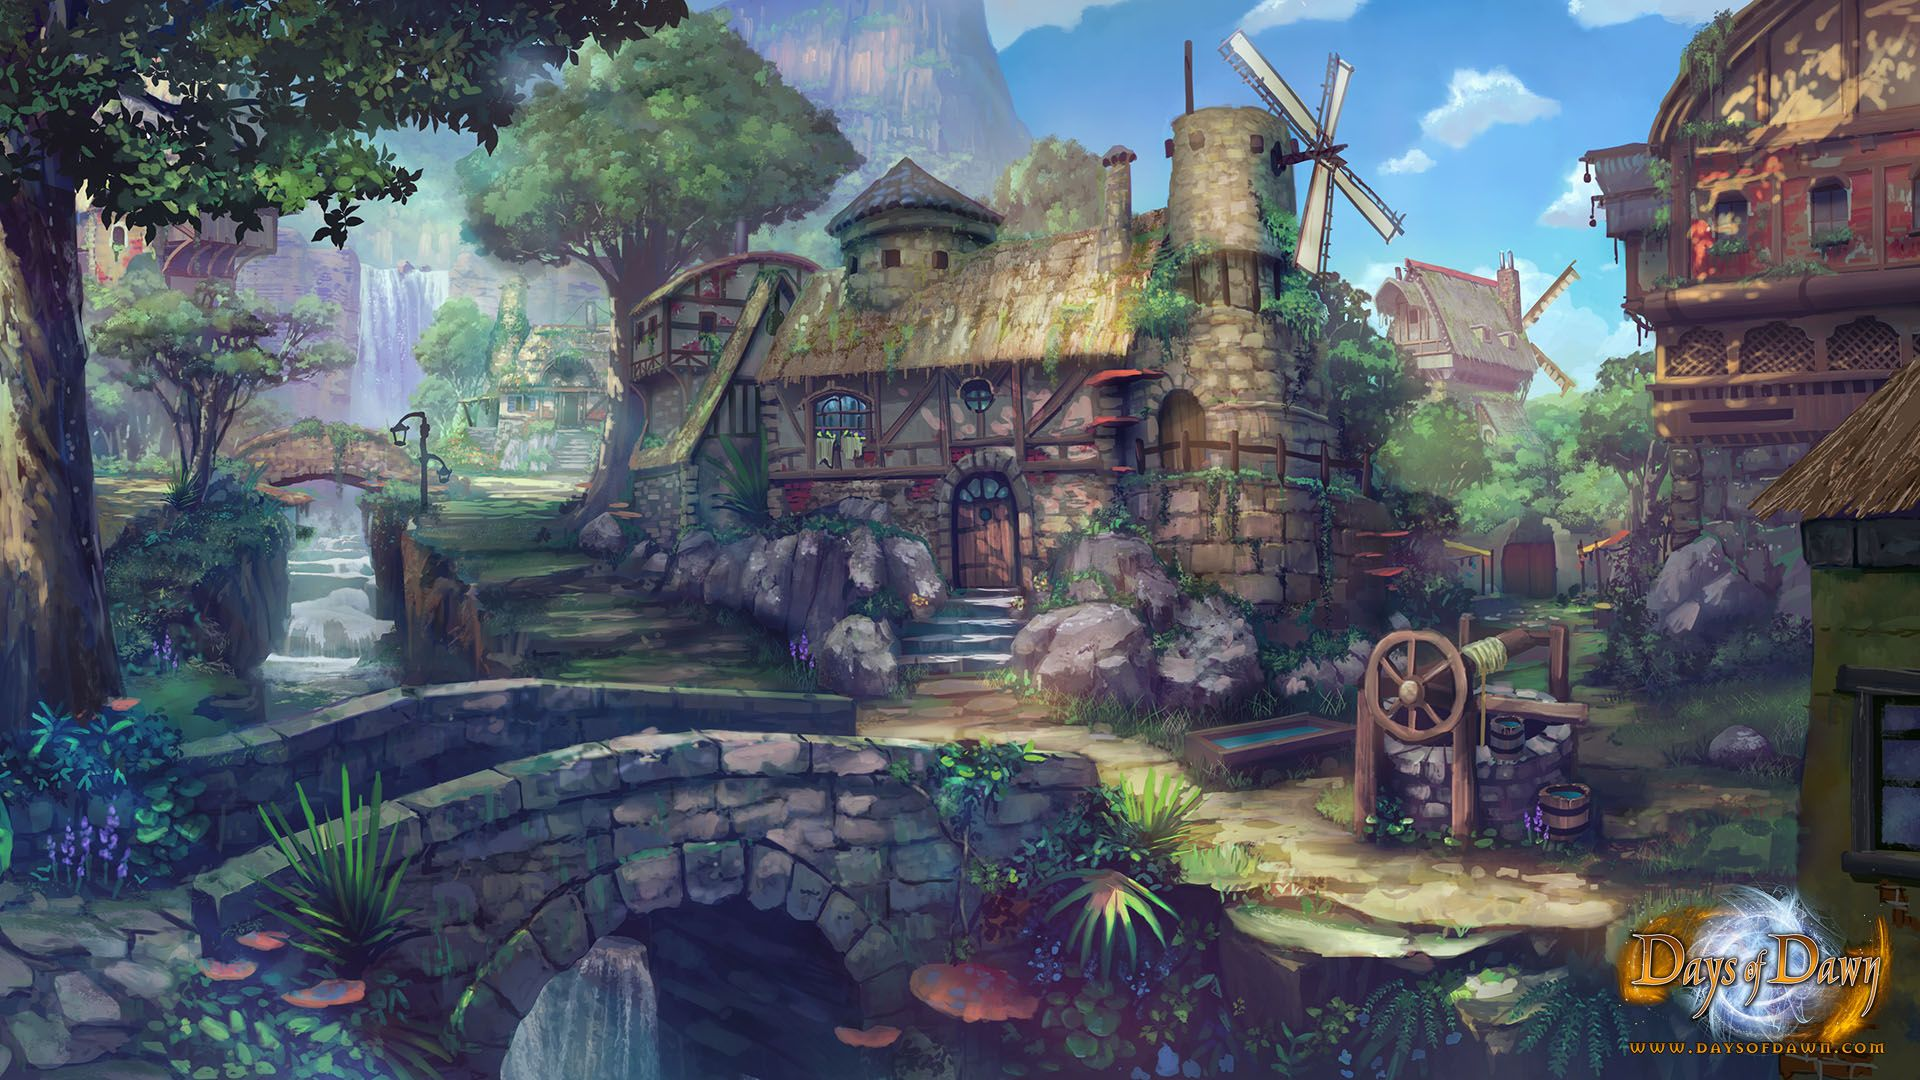 Town concept art for days of dawn image landscape - Art village wallpaper ...